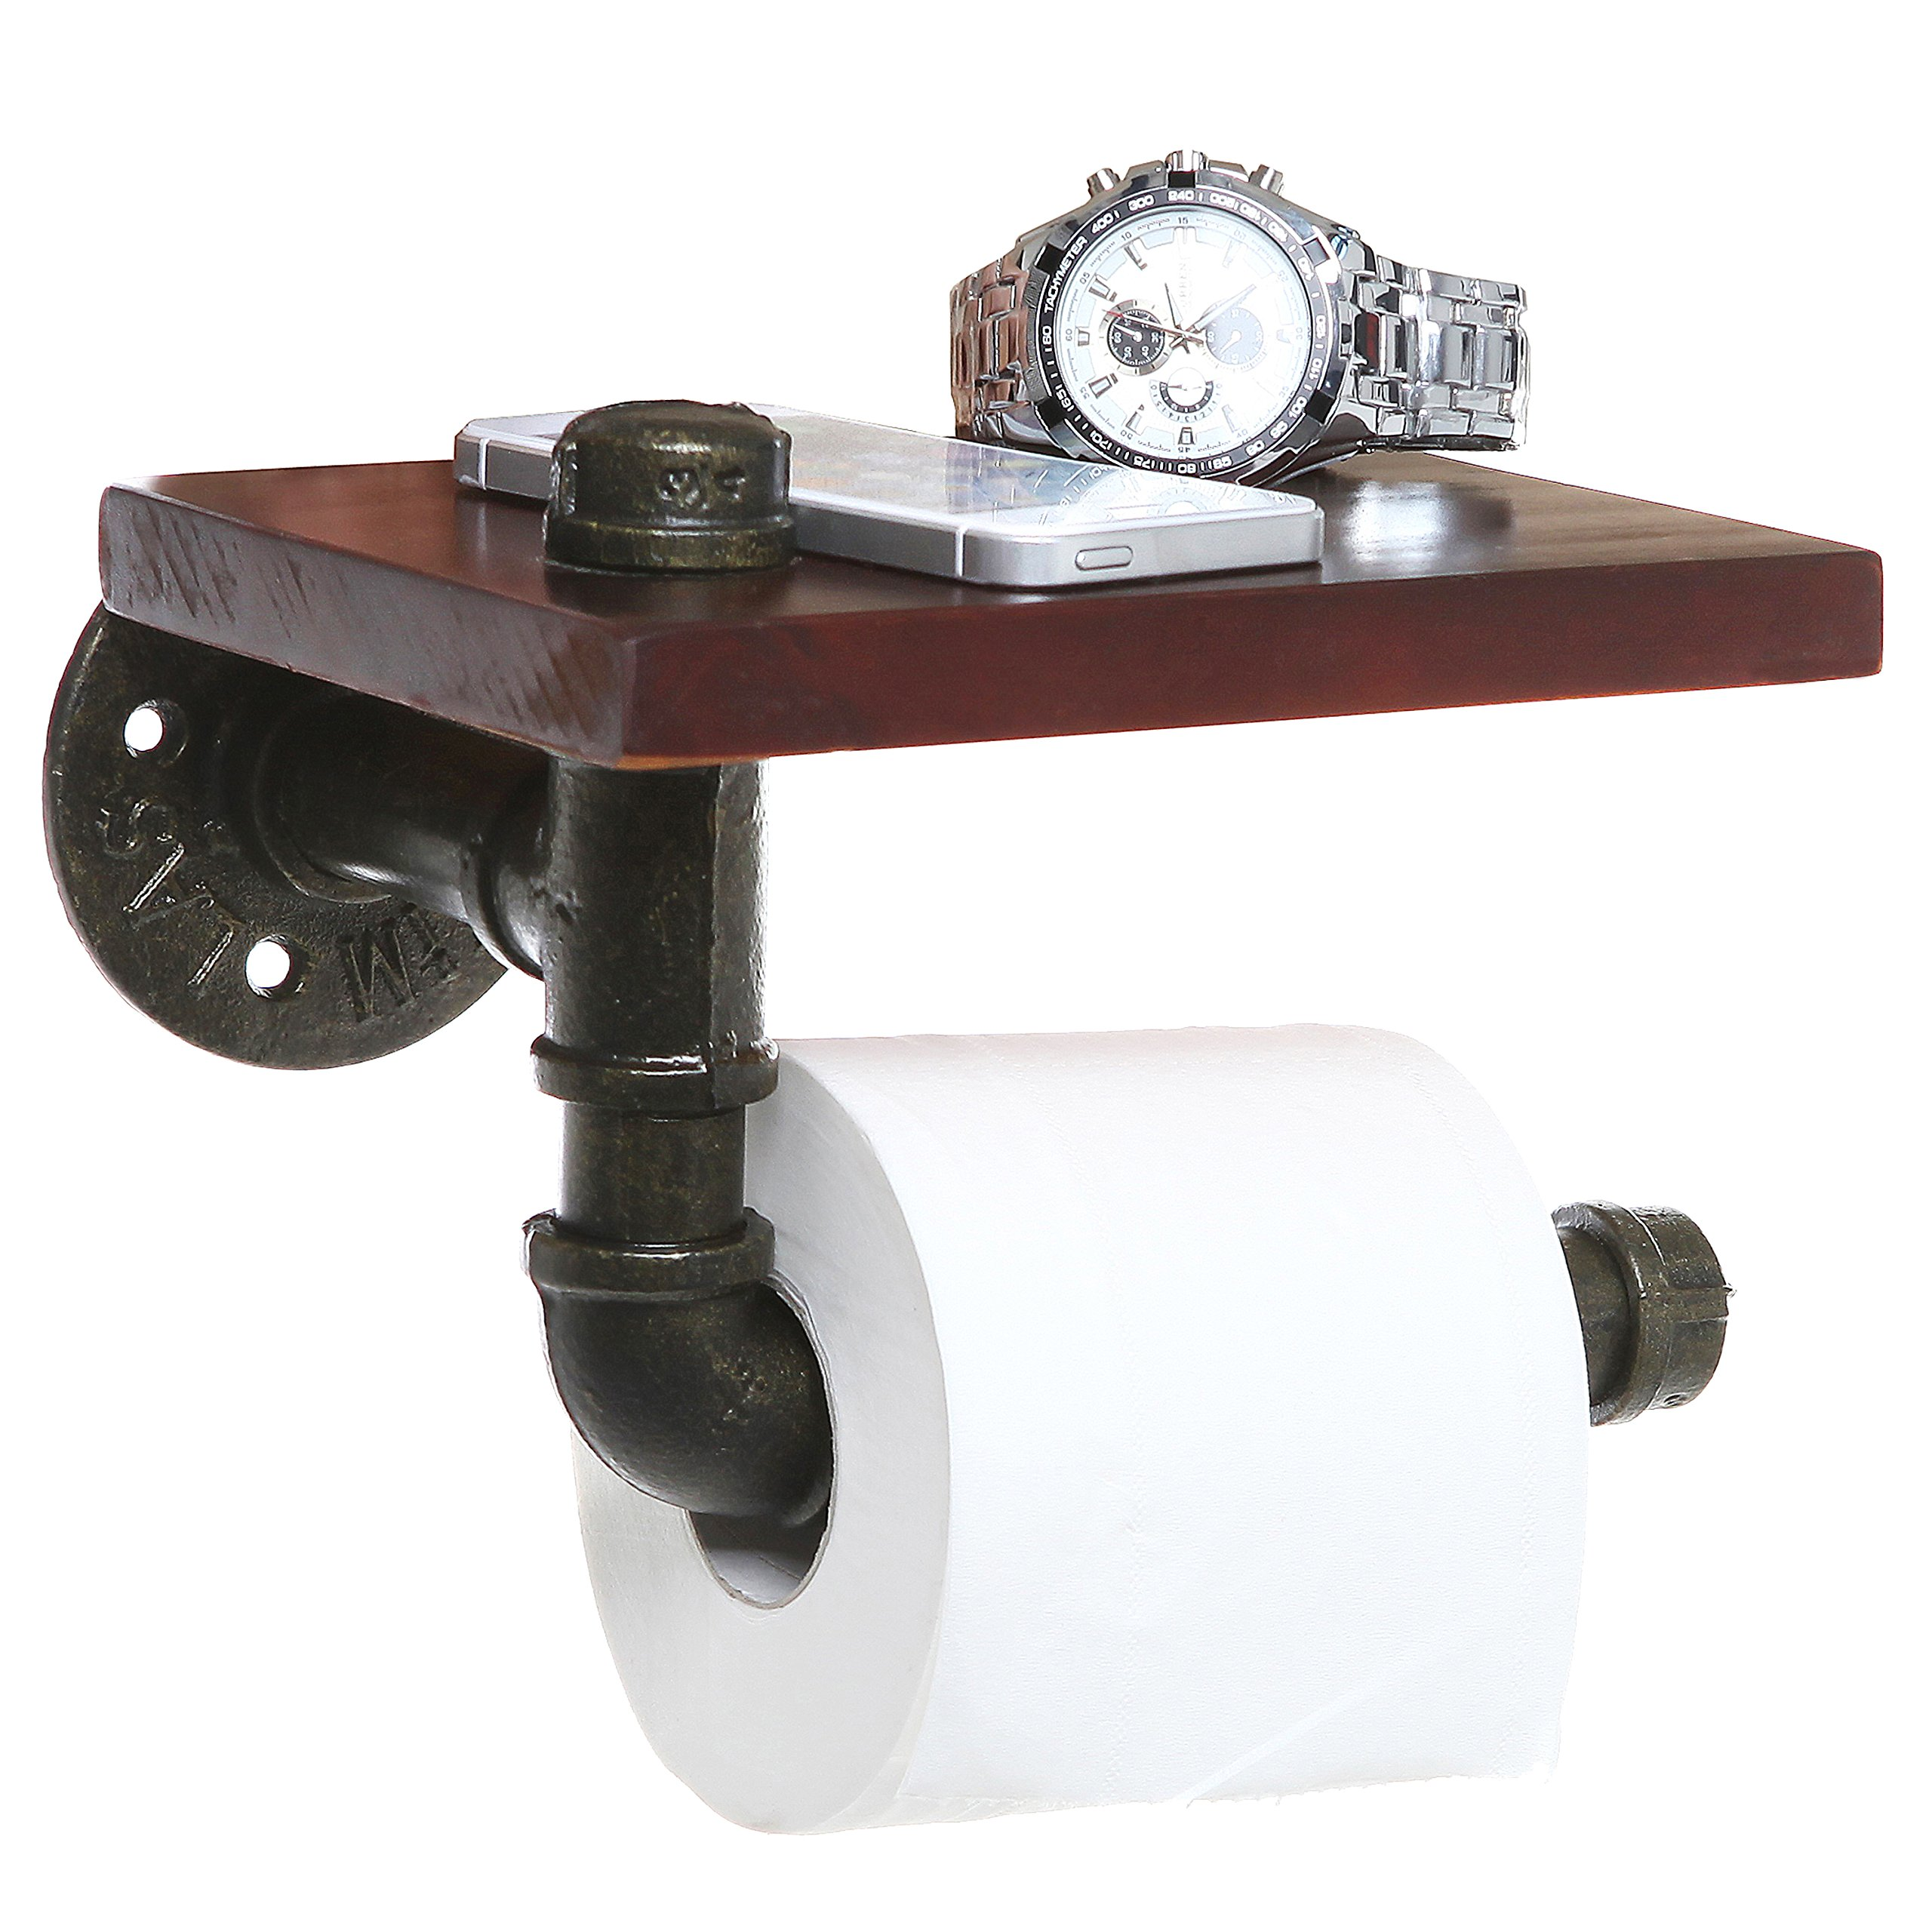 MyGift Rustic Style Pipe Design Brown Wood & Black Metal Wall Mounted Bathroom Shelf/Toilet Paper Roll Holder